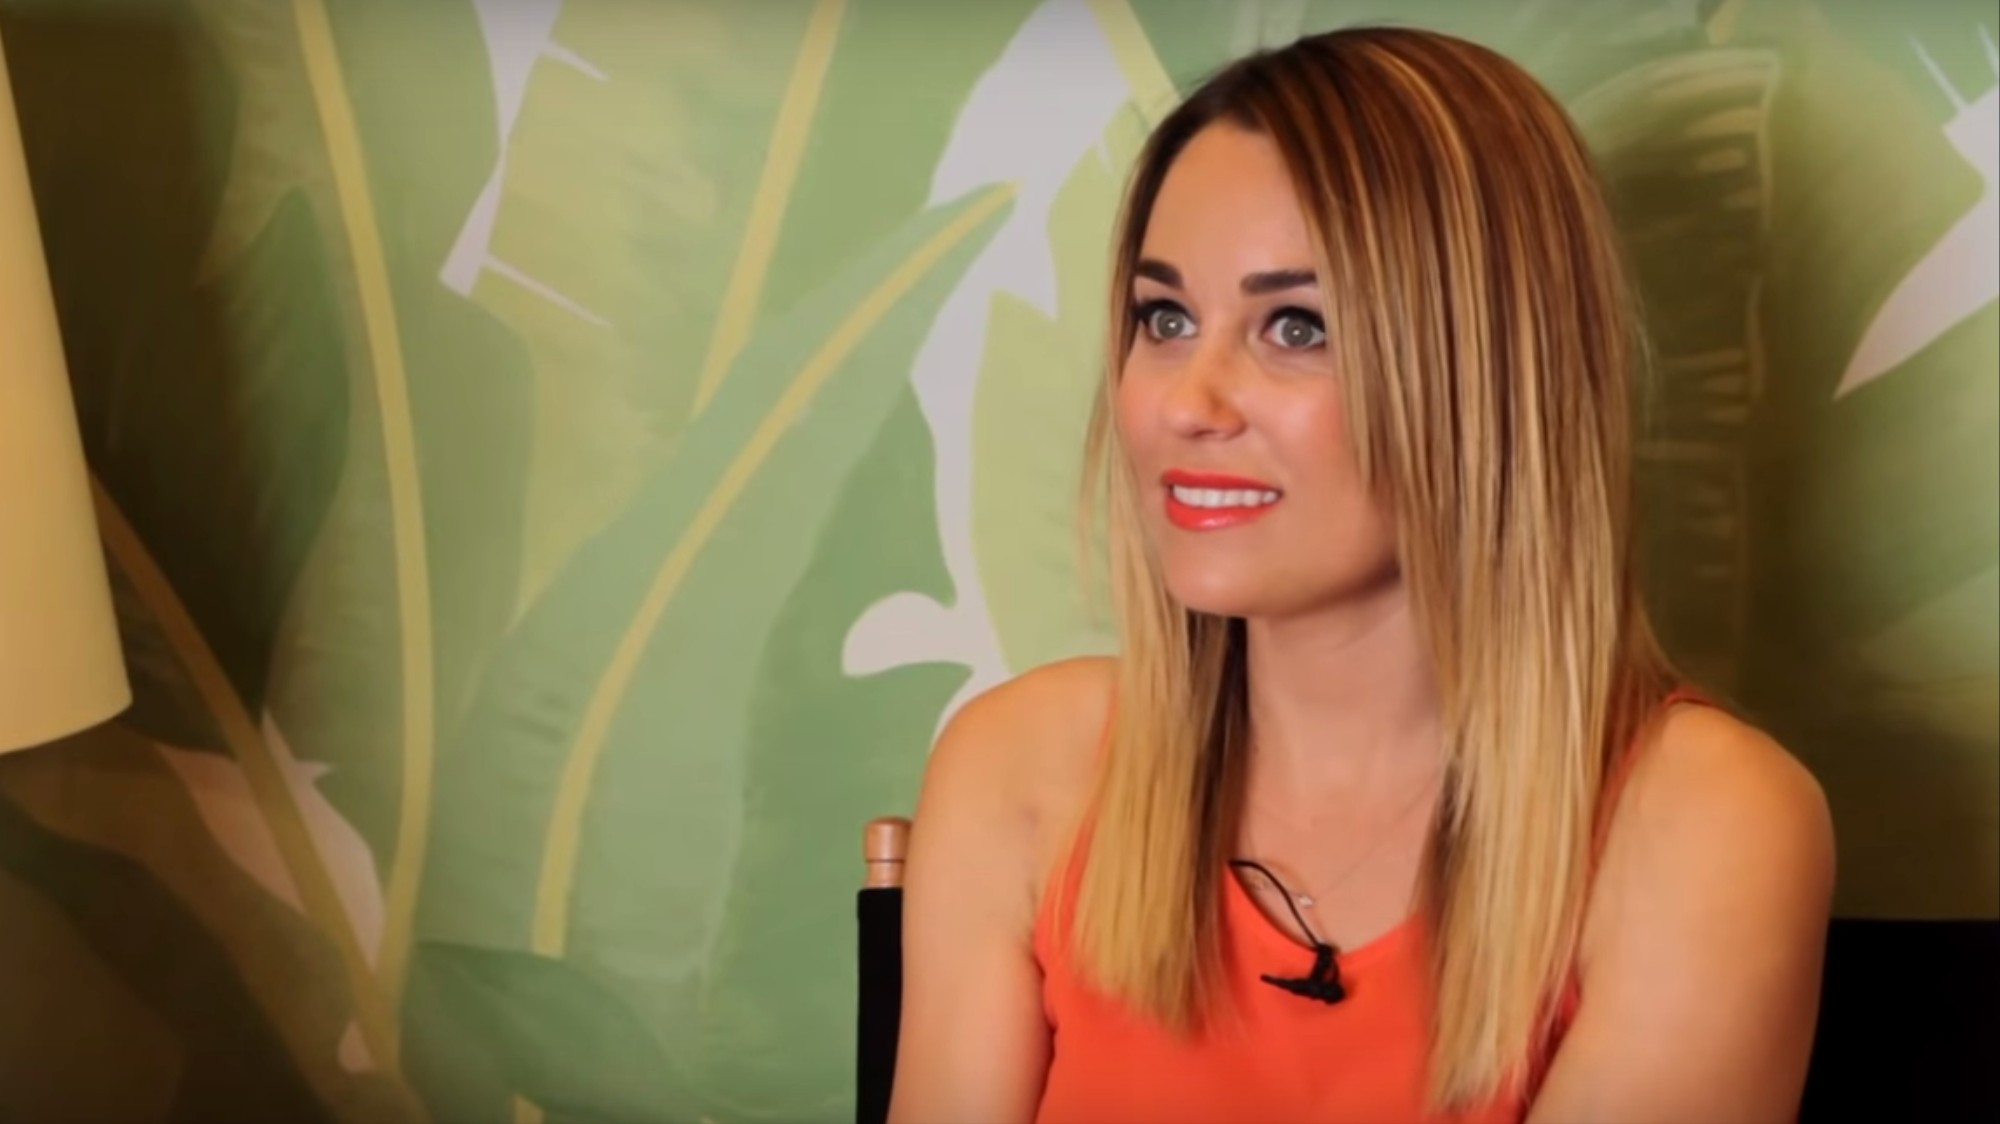 Meet the Mysterious Humans Who Attended a Lauren Conrad Book